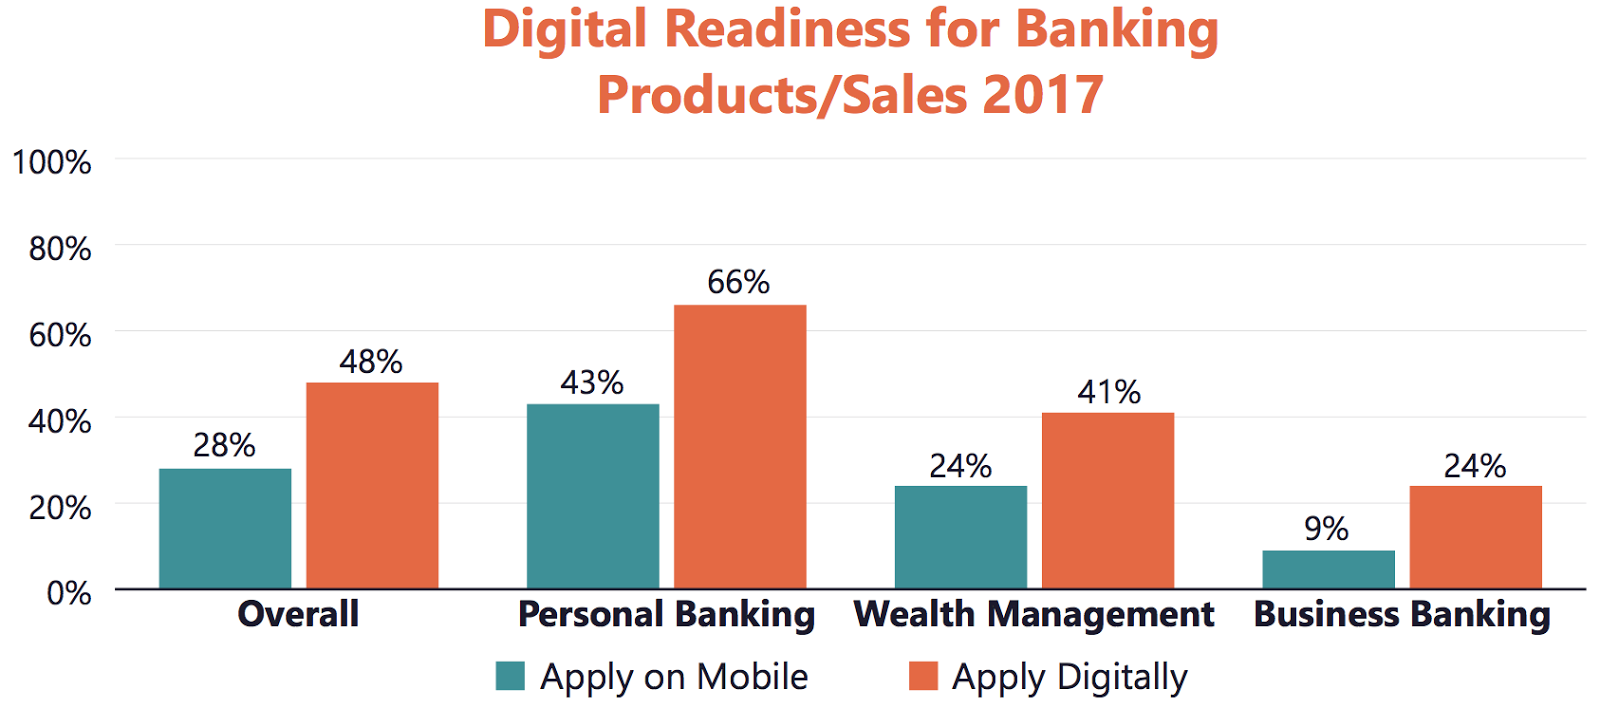 Banks Are Slow to Adopt Digital Sales Capabilities, but There Is Progress – Study by Avoka